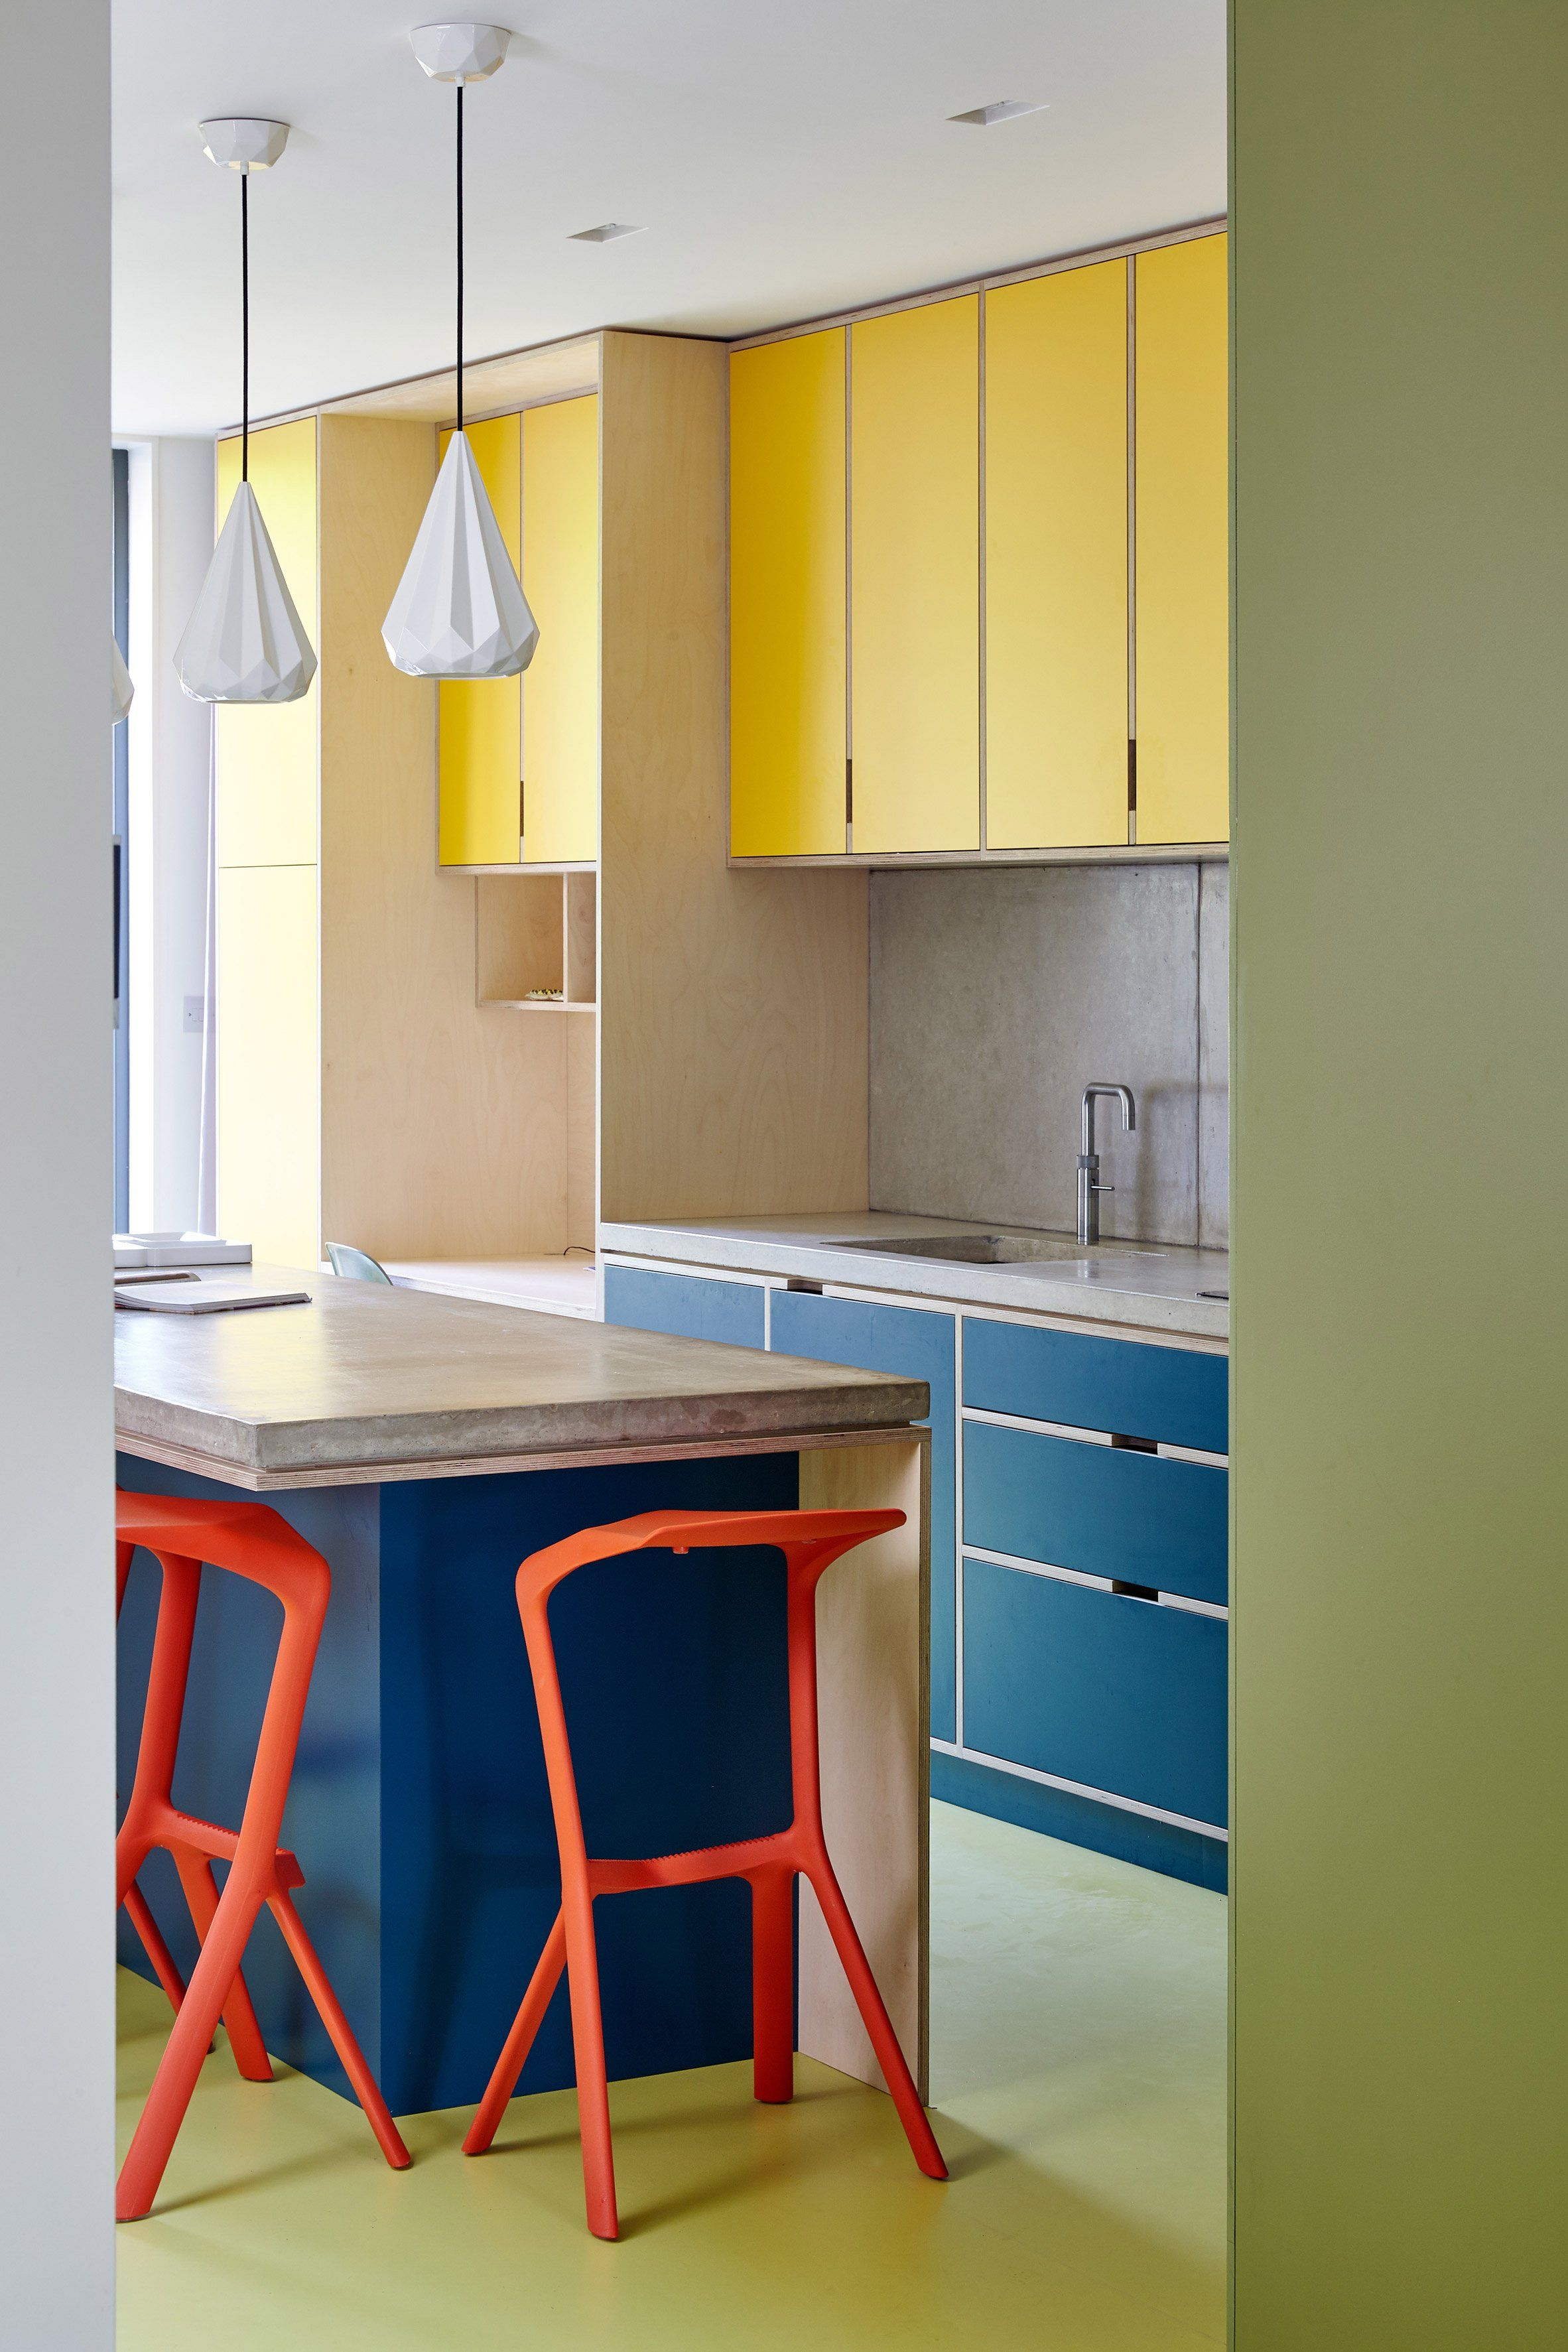 R studio enlivens victorian london home with bold colour palette